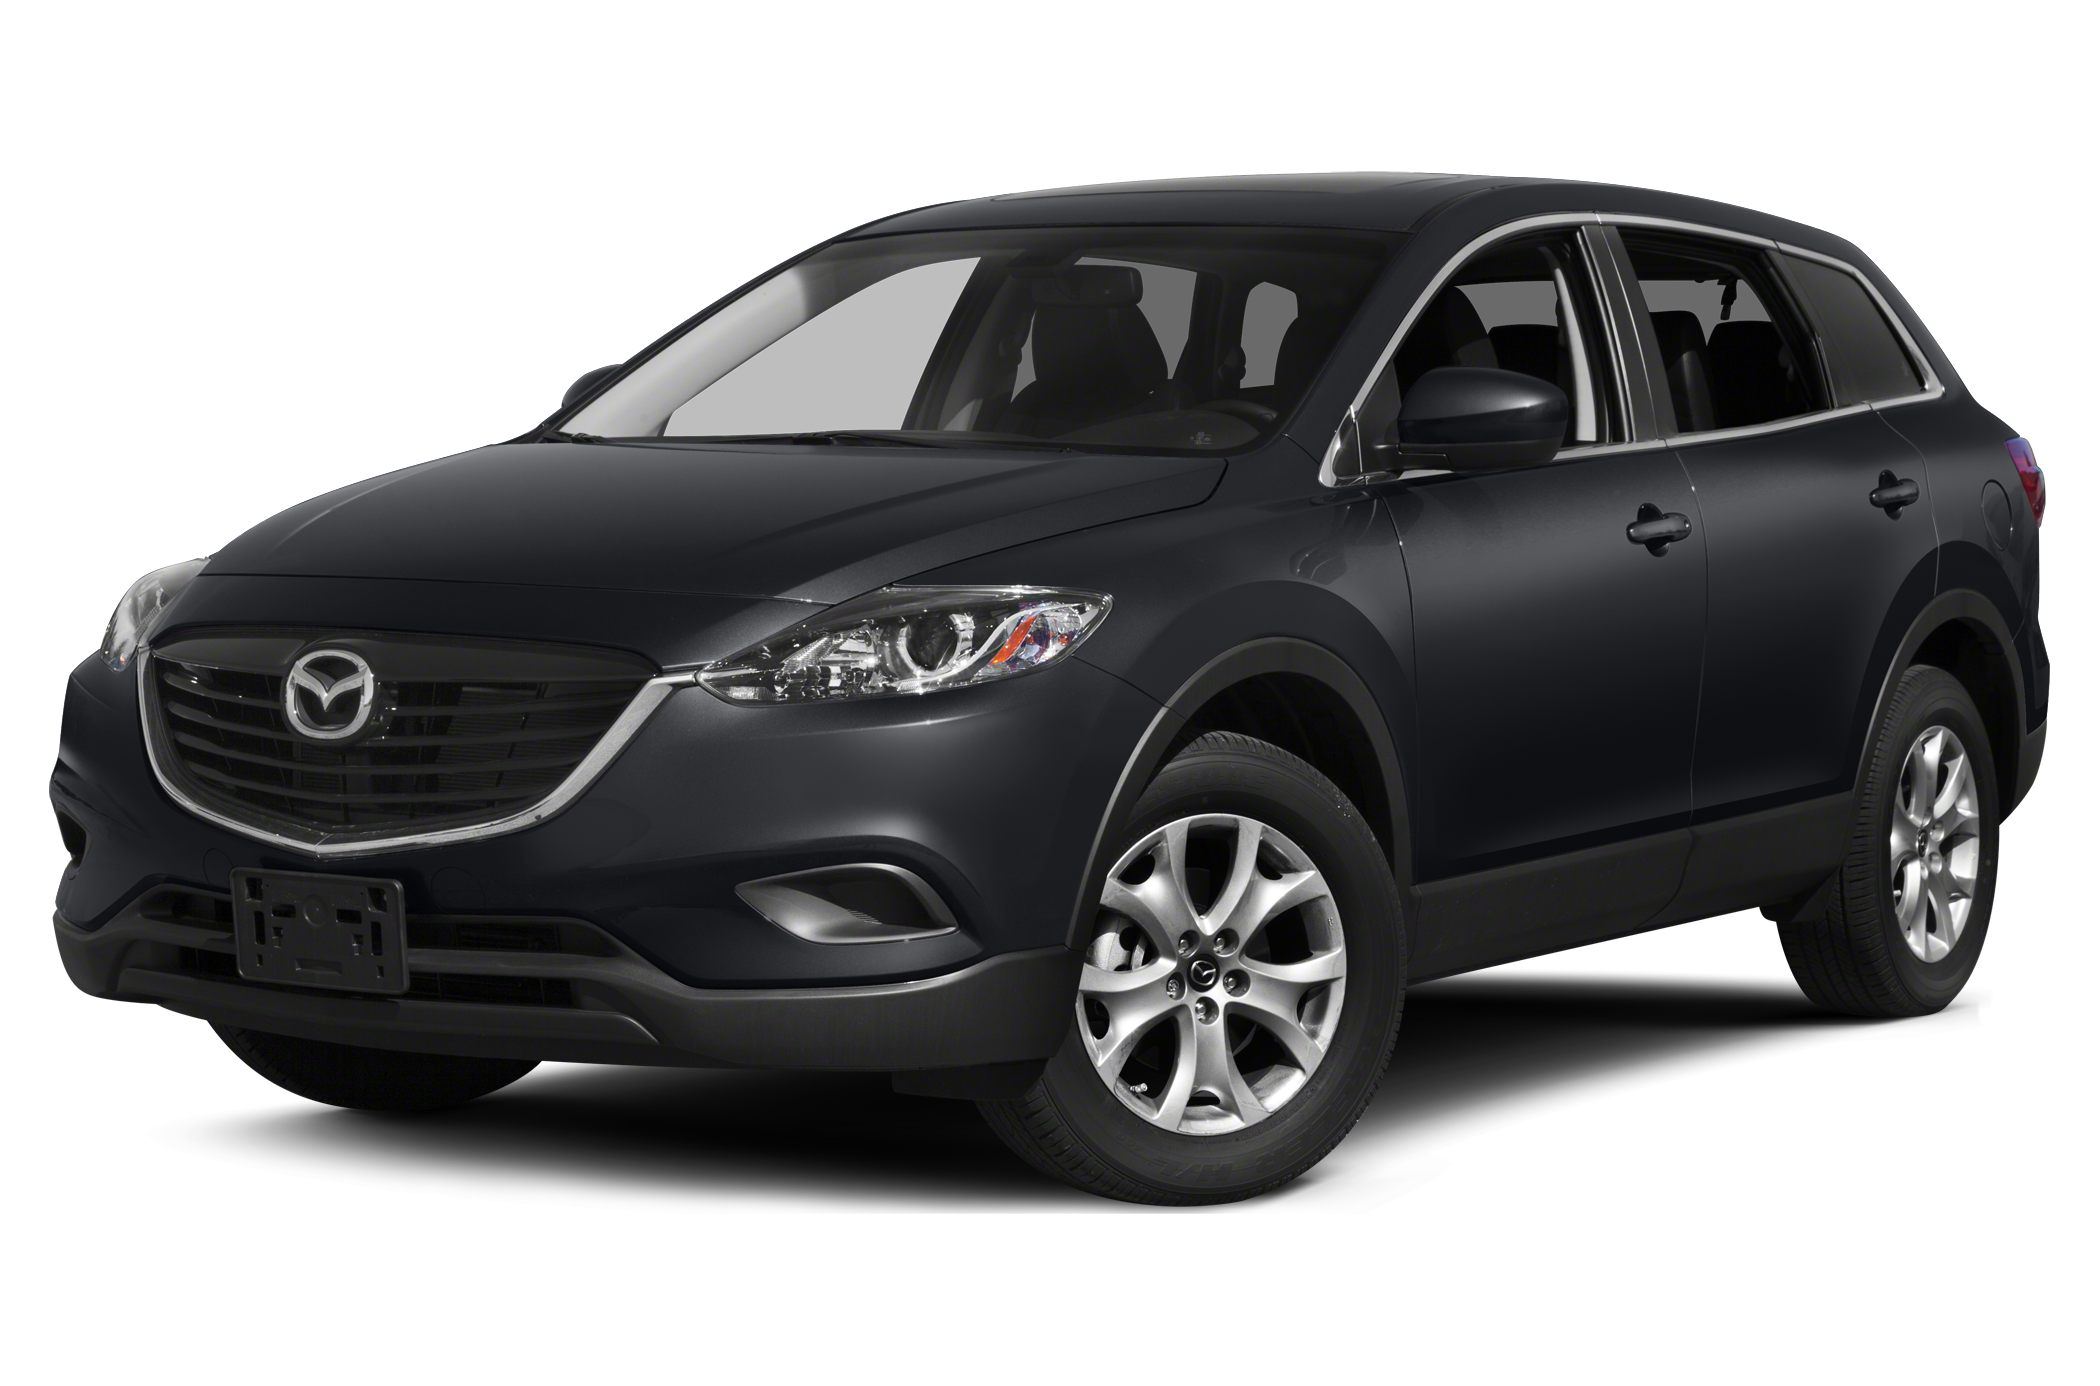 2015 Mazda CX-9 Touring SUV for sale in Los Angeles for $36,310 with 13 miles